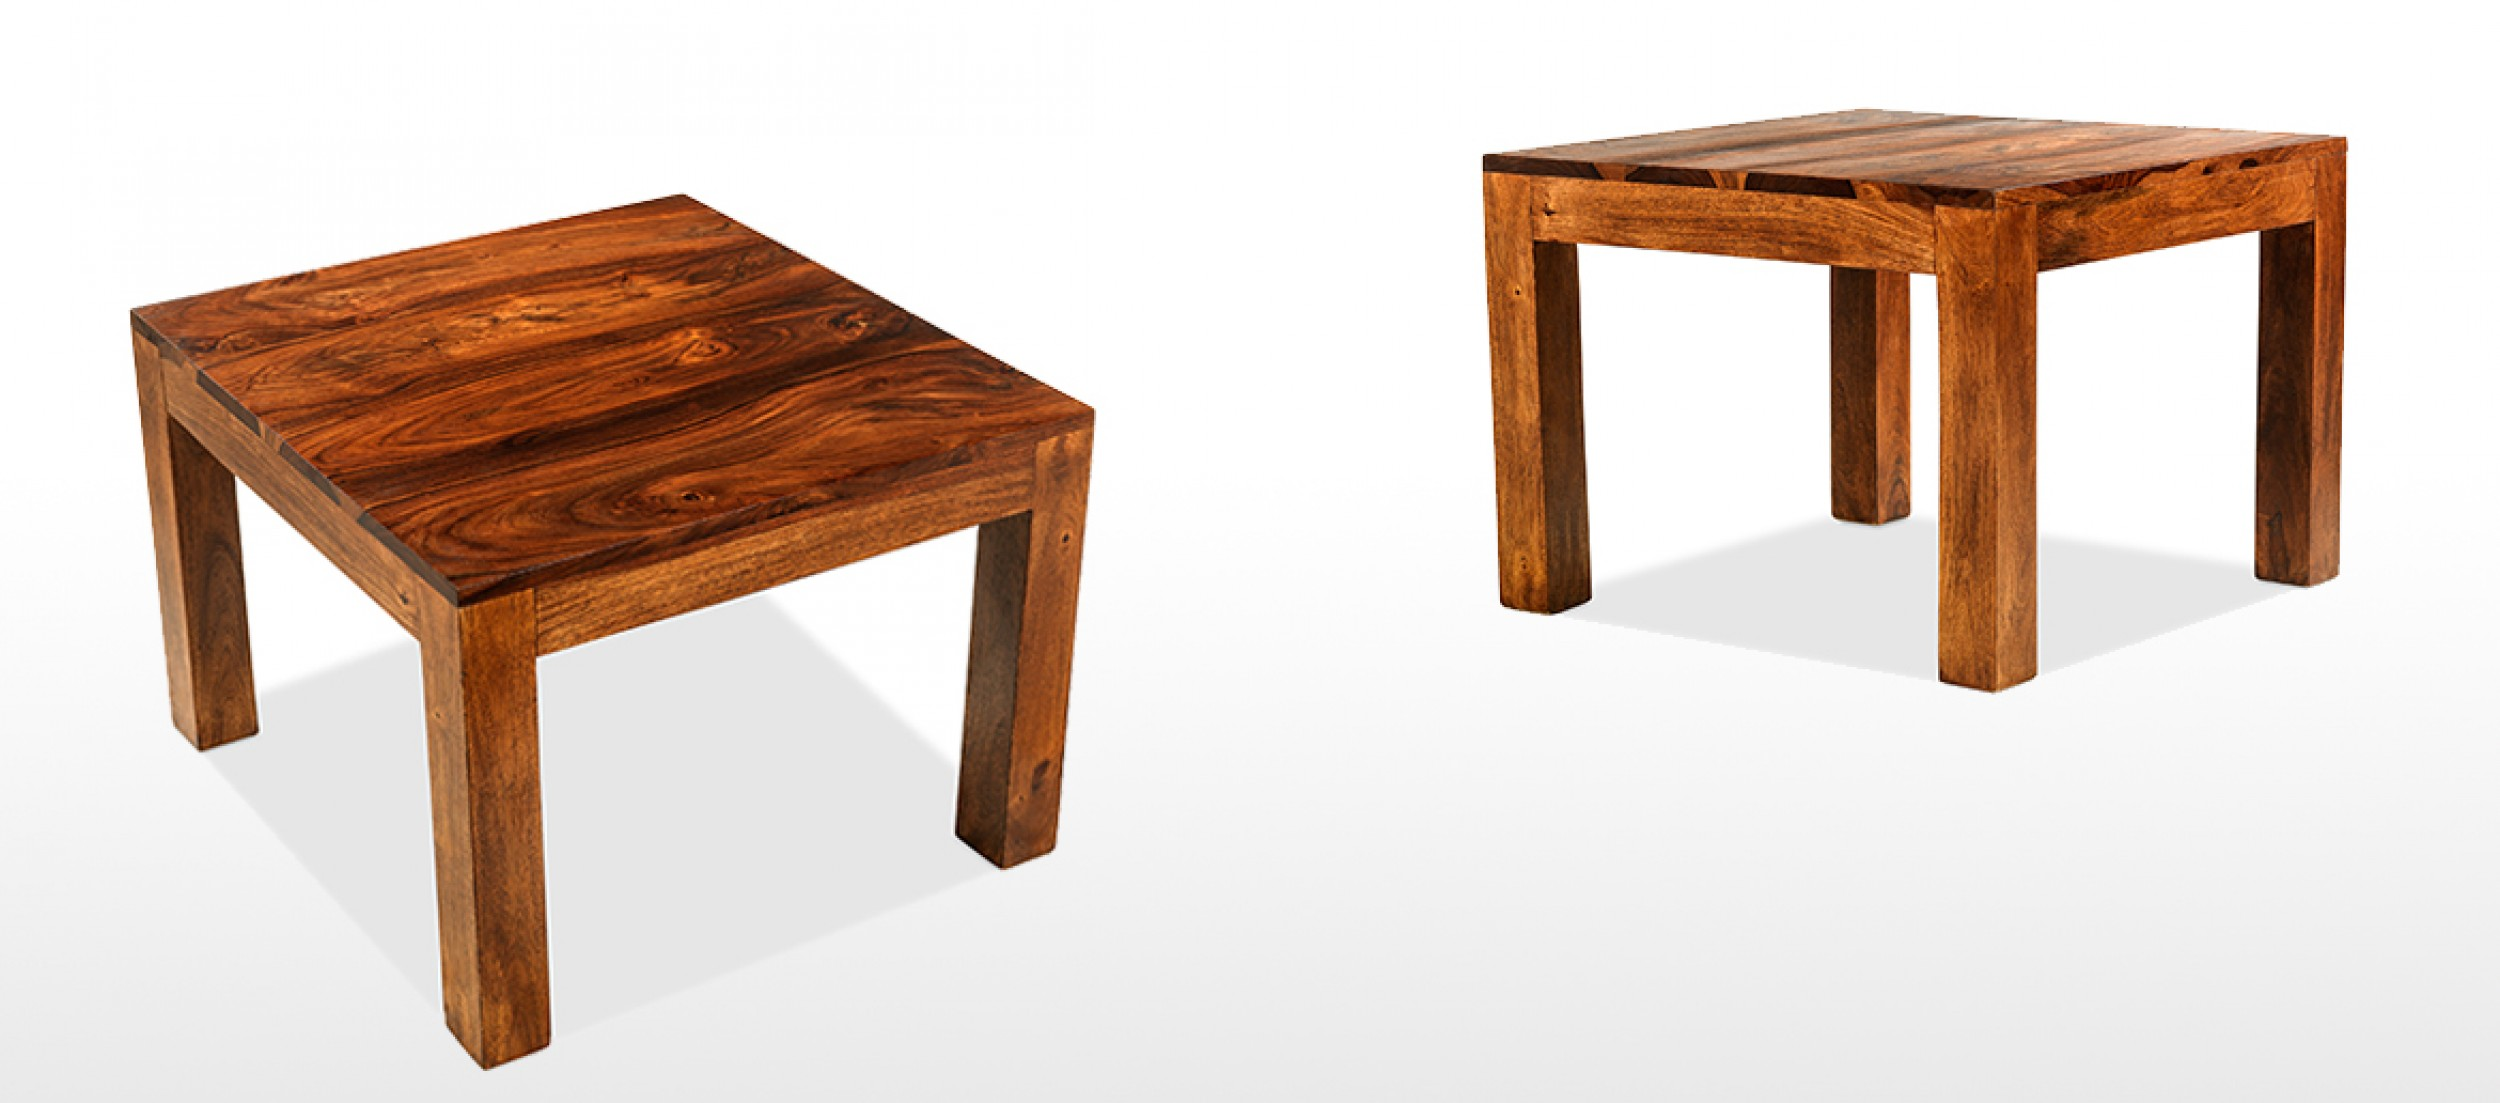 Cube sheesham 60 cm coffee table quercus living - Table largeur 60 cm ...